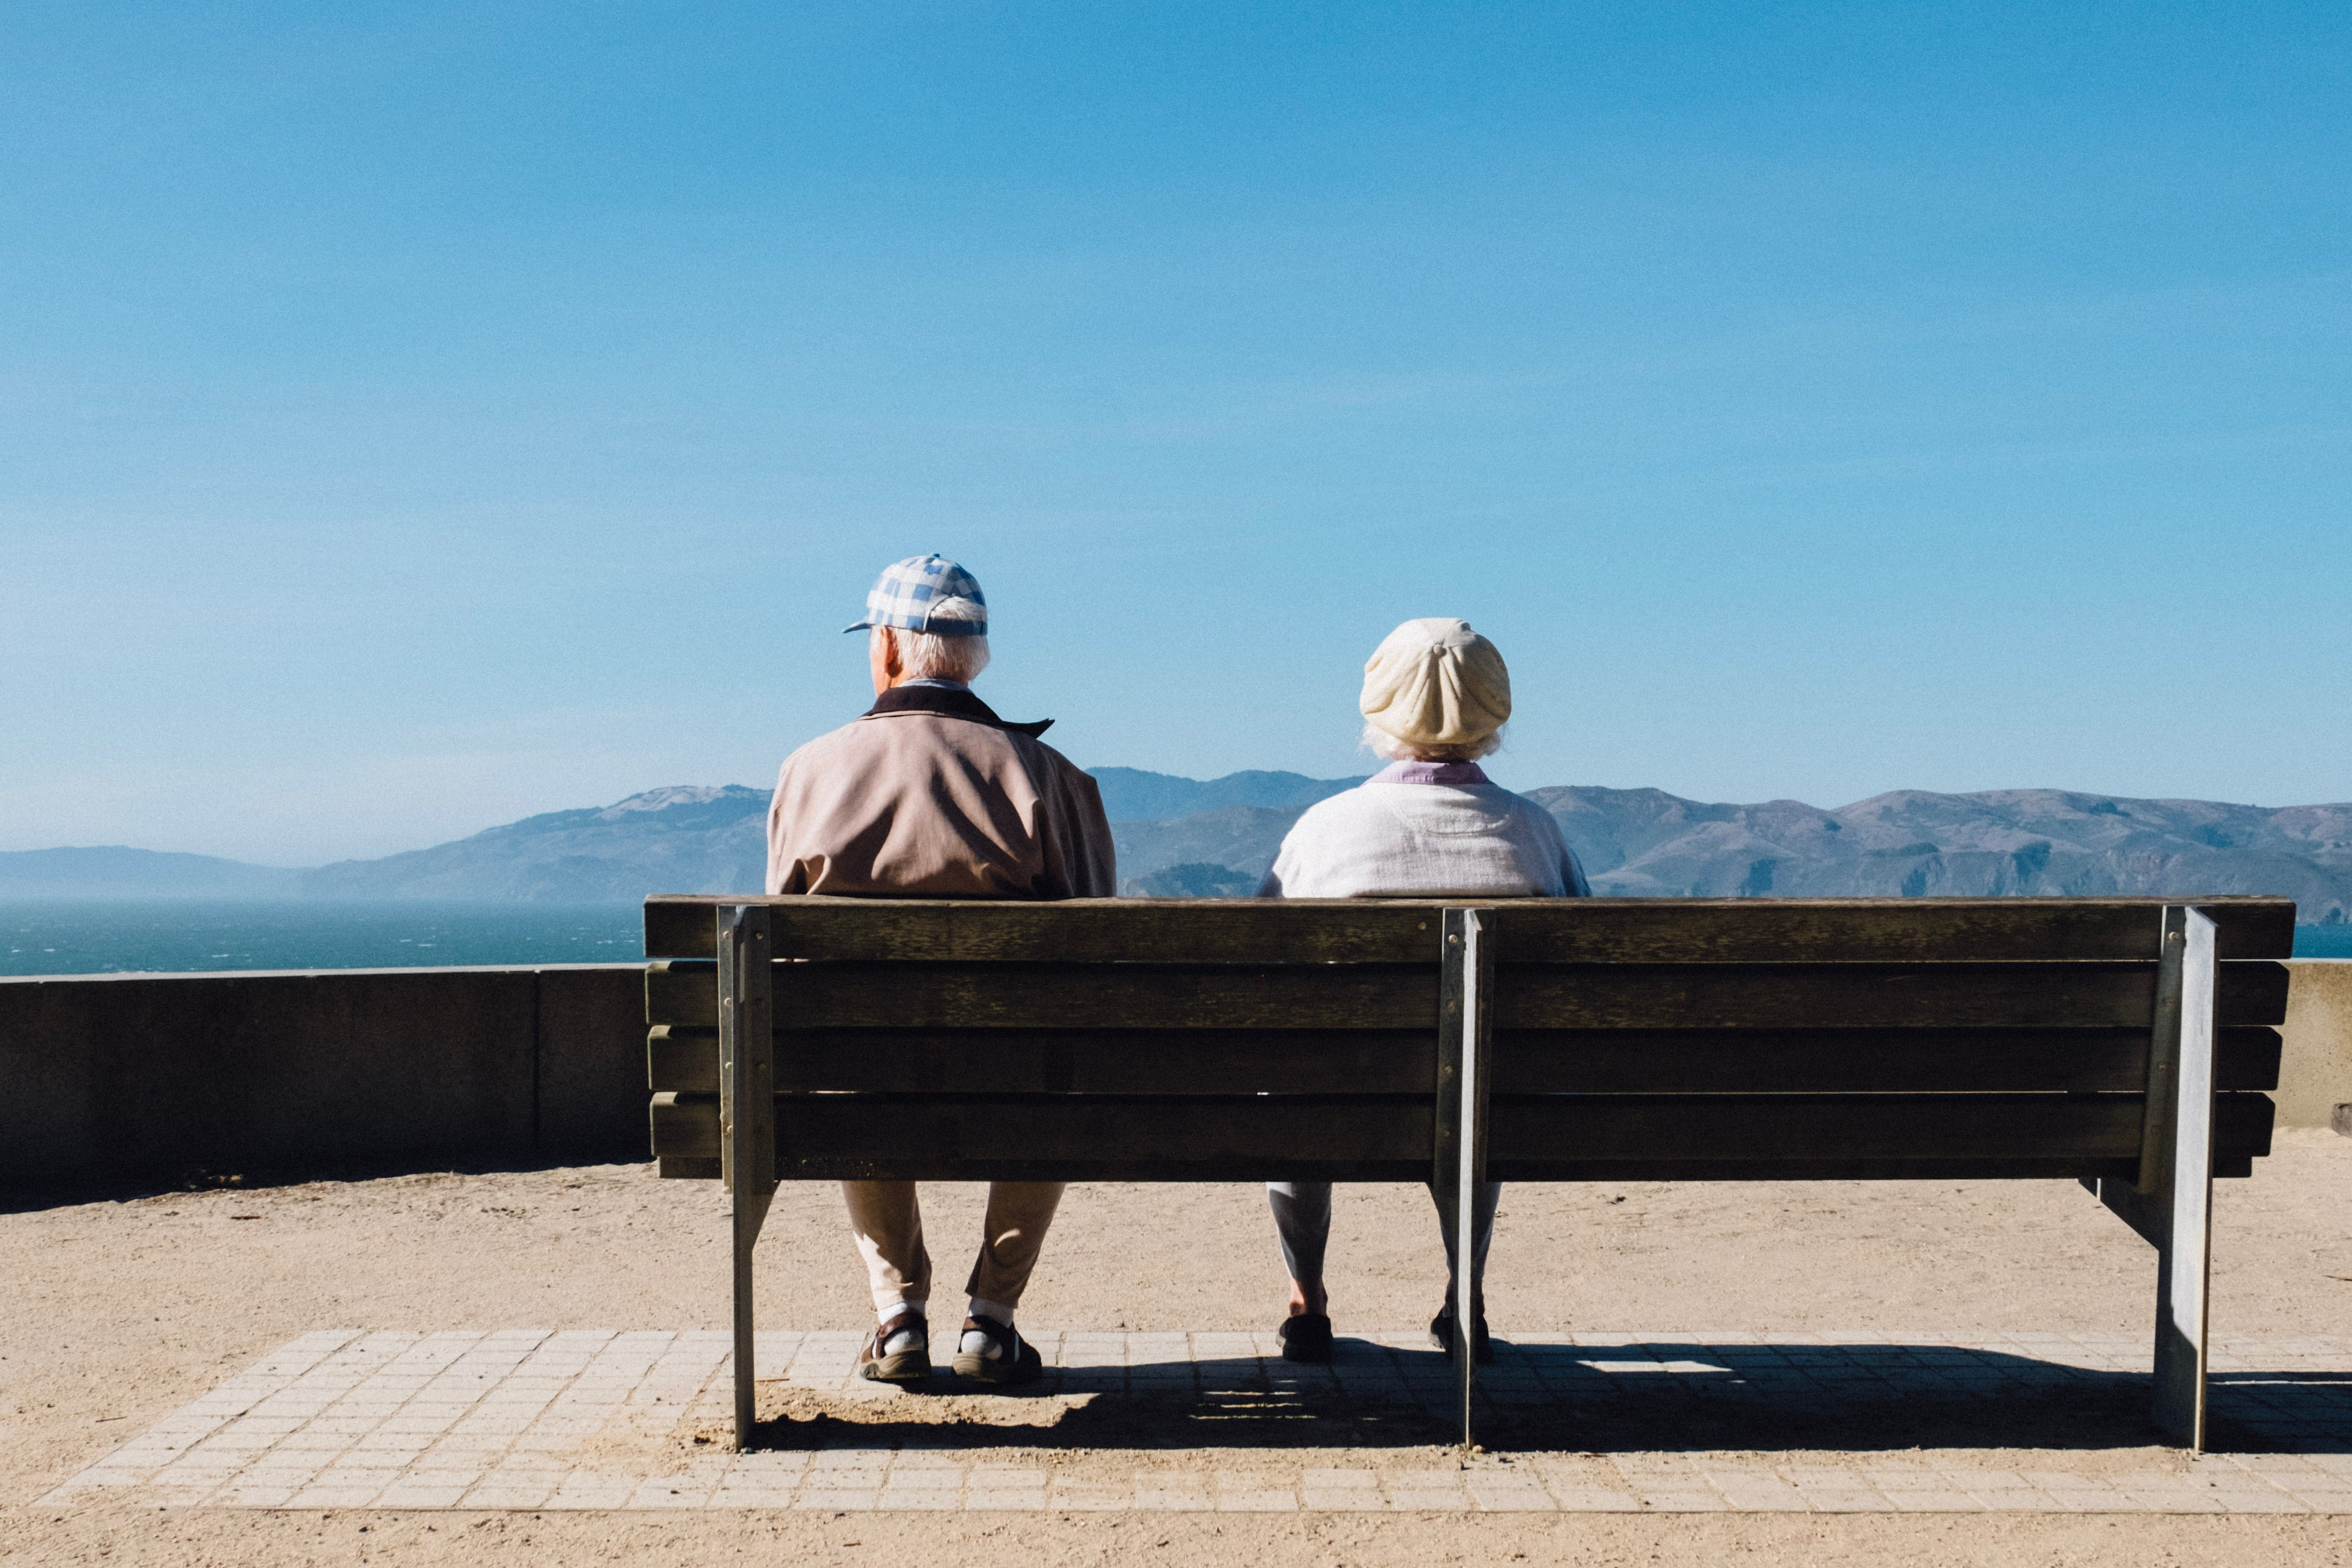 Older couple sits on a bench and enjoys the view of the mountains and blue sky